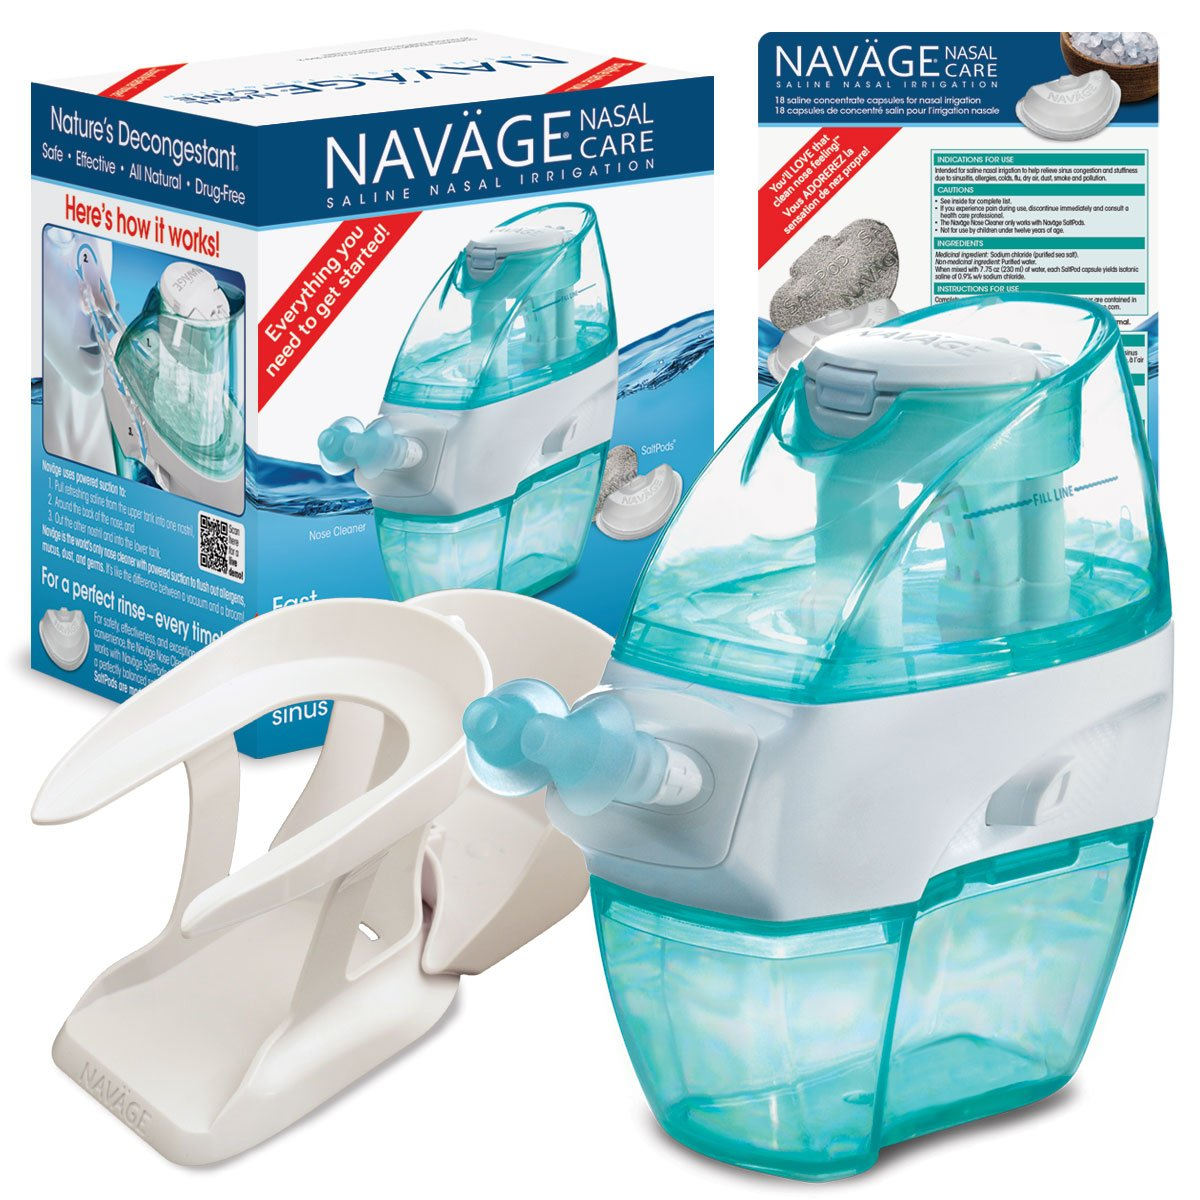 Navage Nasal Care Essentials Bundle: Navage Nose Cleaner, 36 SaltPod Capsules, and Countertop Caddy. 116.90 if Purchased Separately, You Save 16.95. by Navage